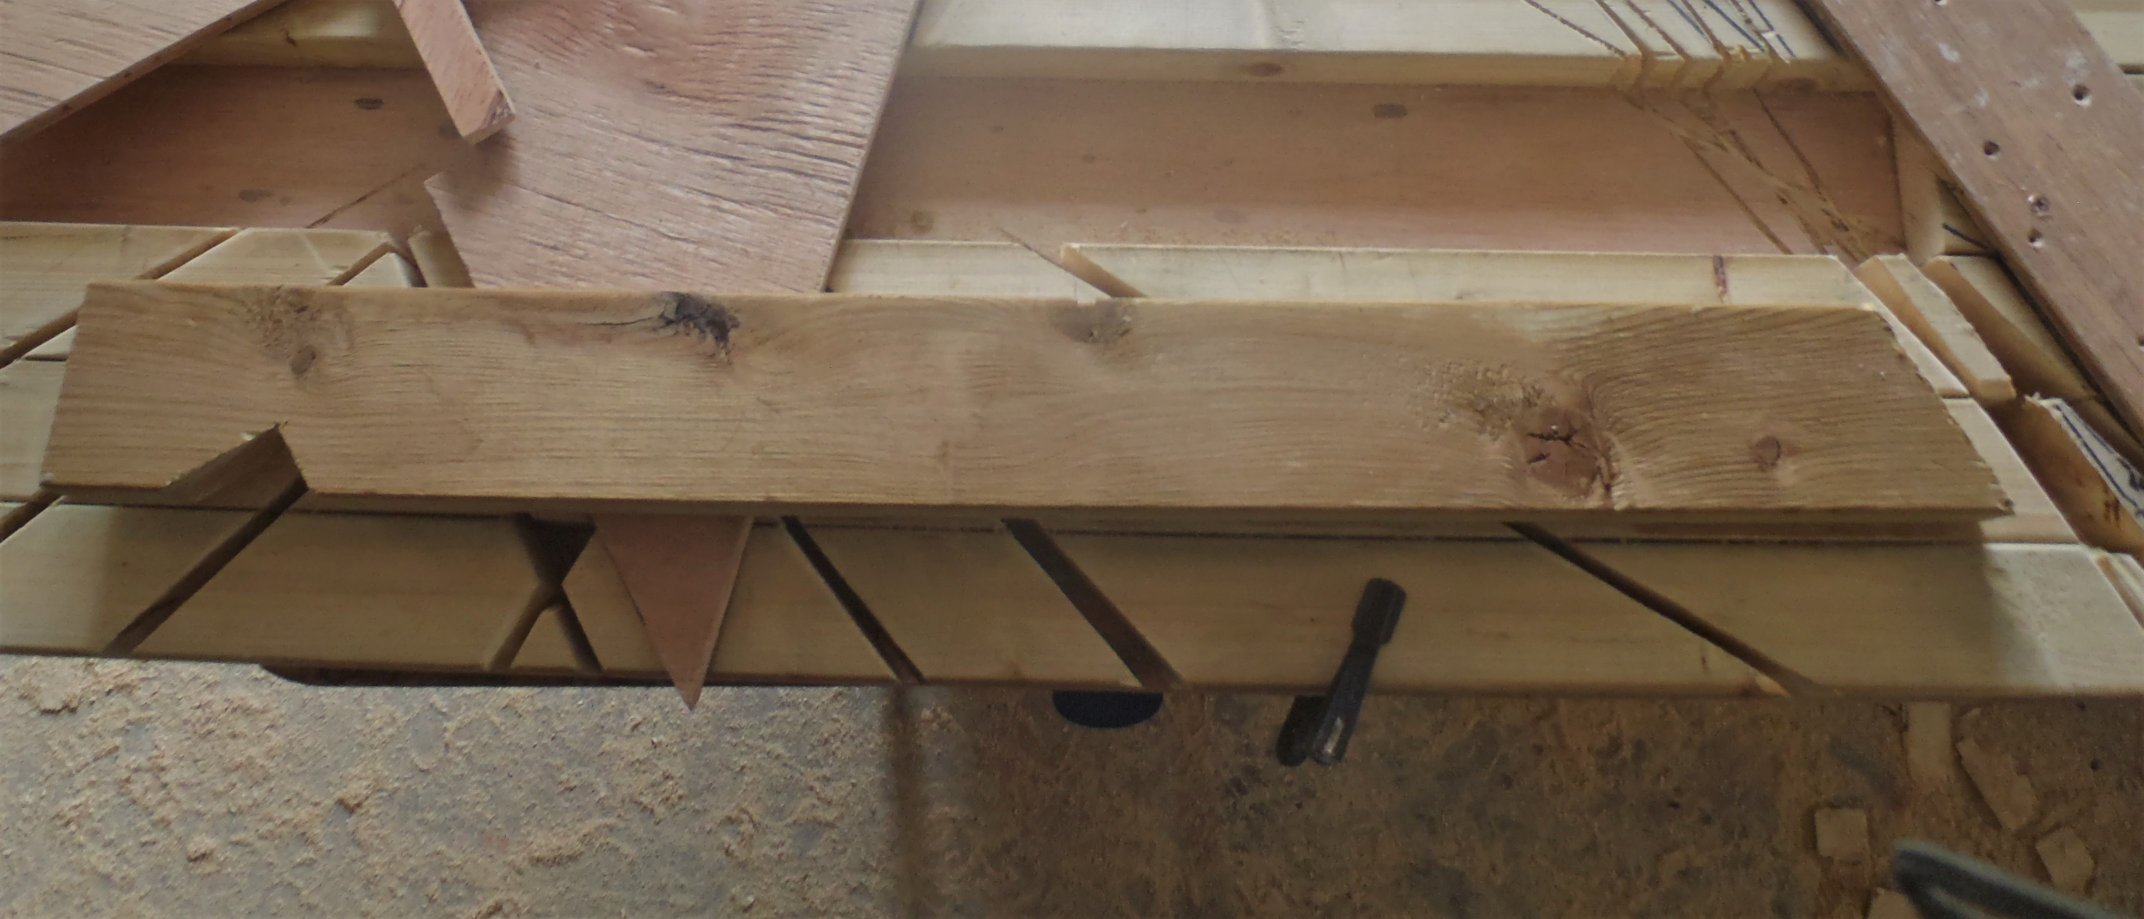 Birds Mouth Jig And Eve S End Of Rafter Template Is